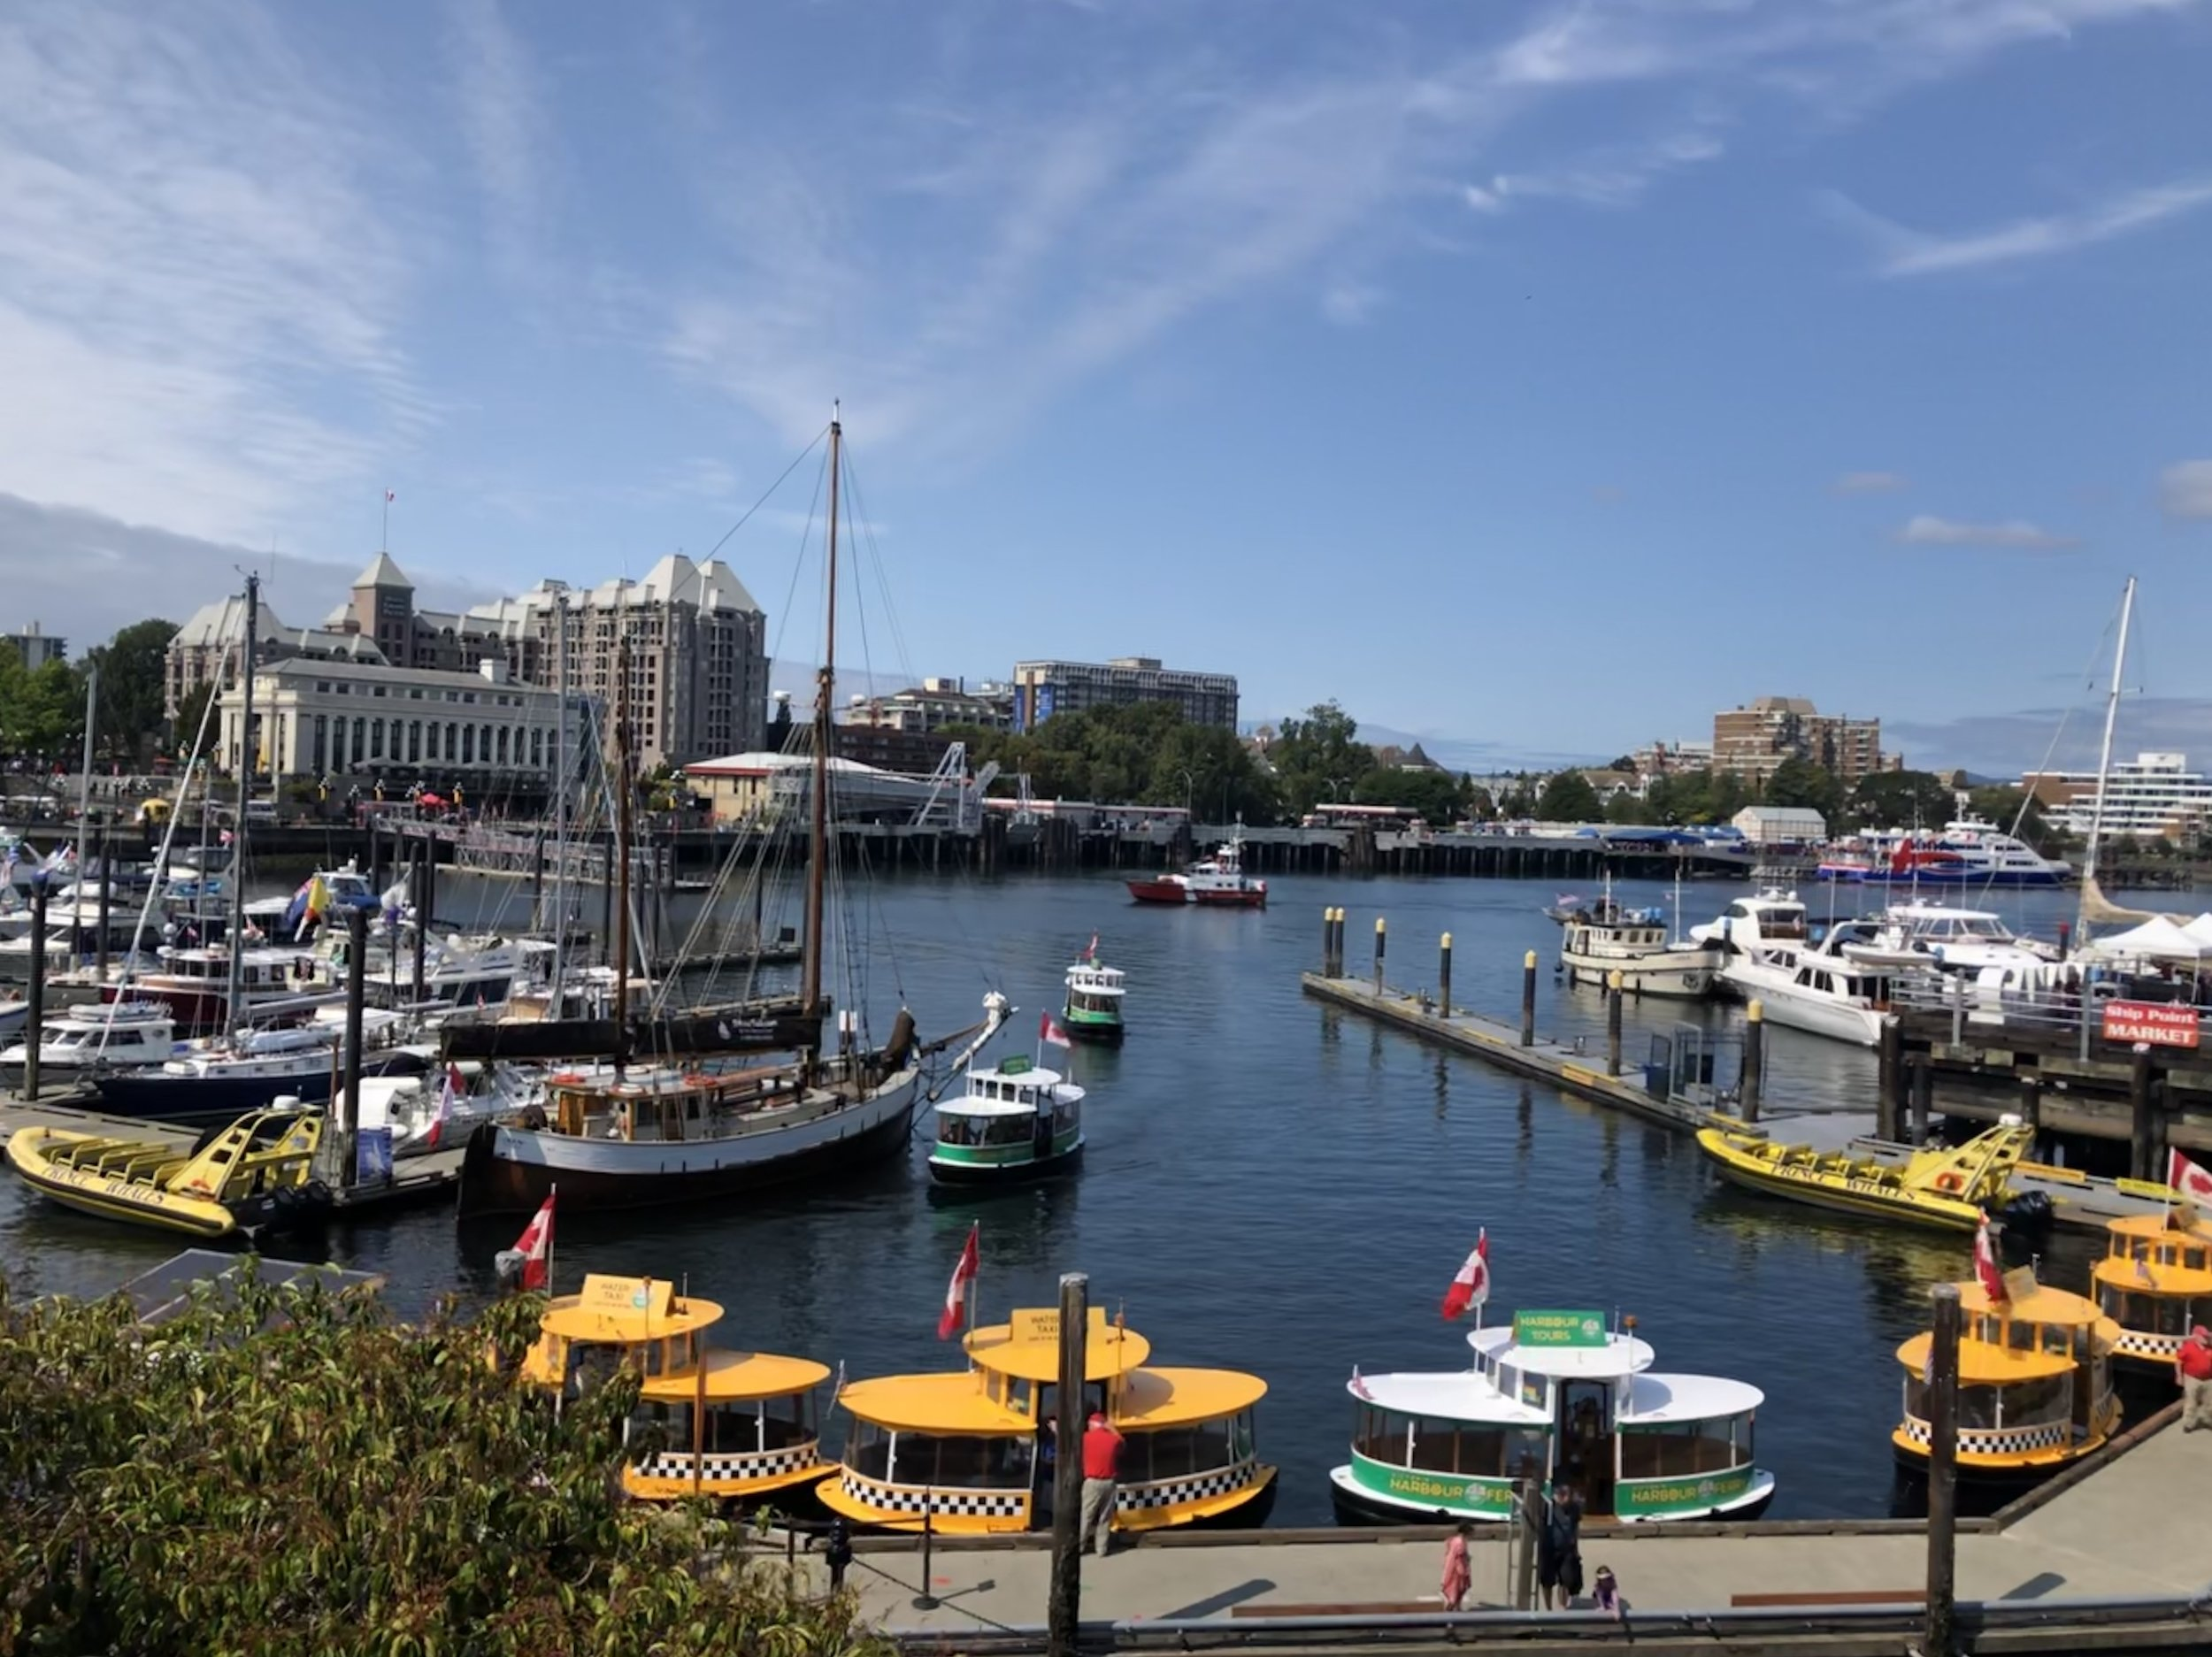 Water Taxis and boats on the Victoria Harbour / Photo by Samantha Goldstein